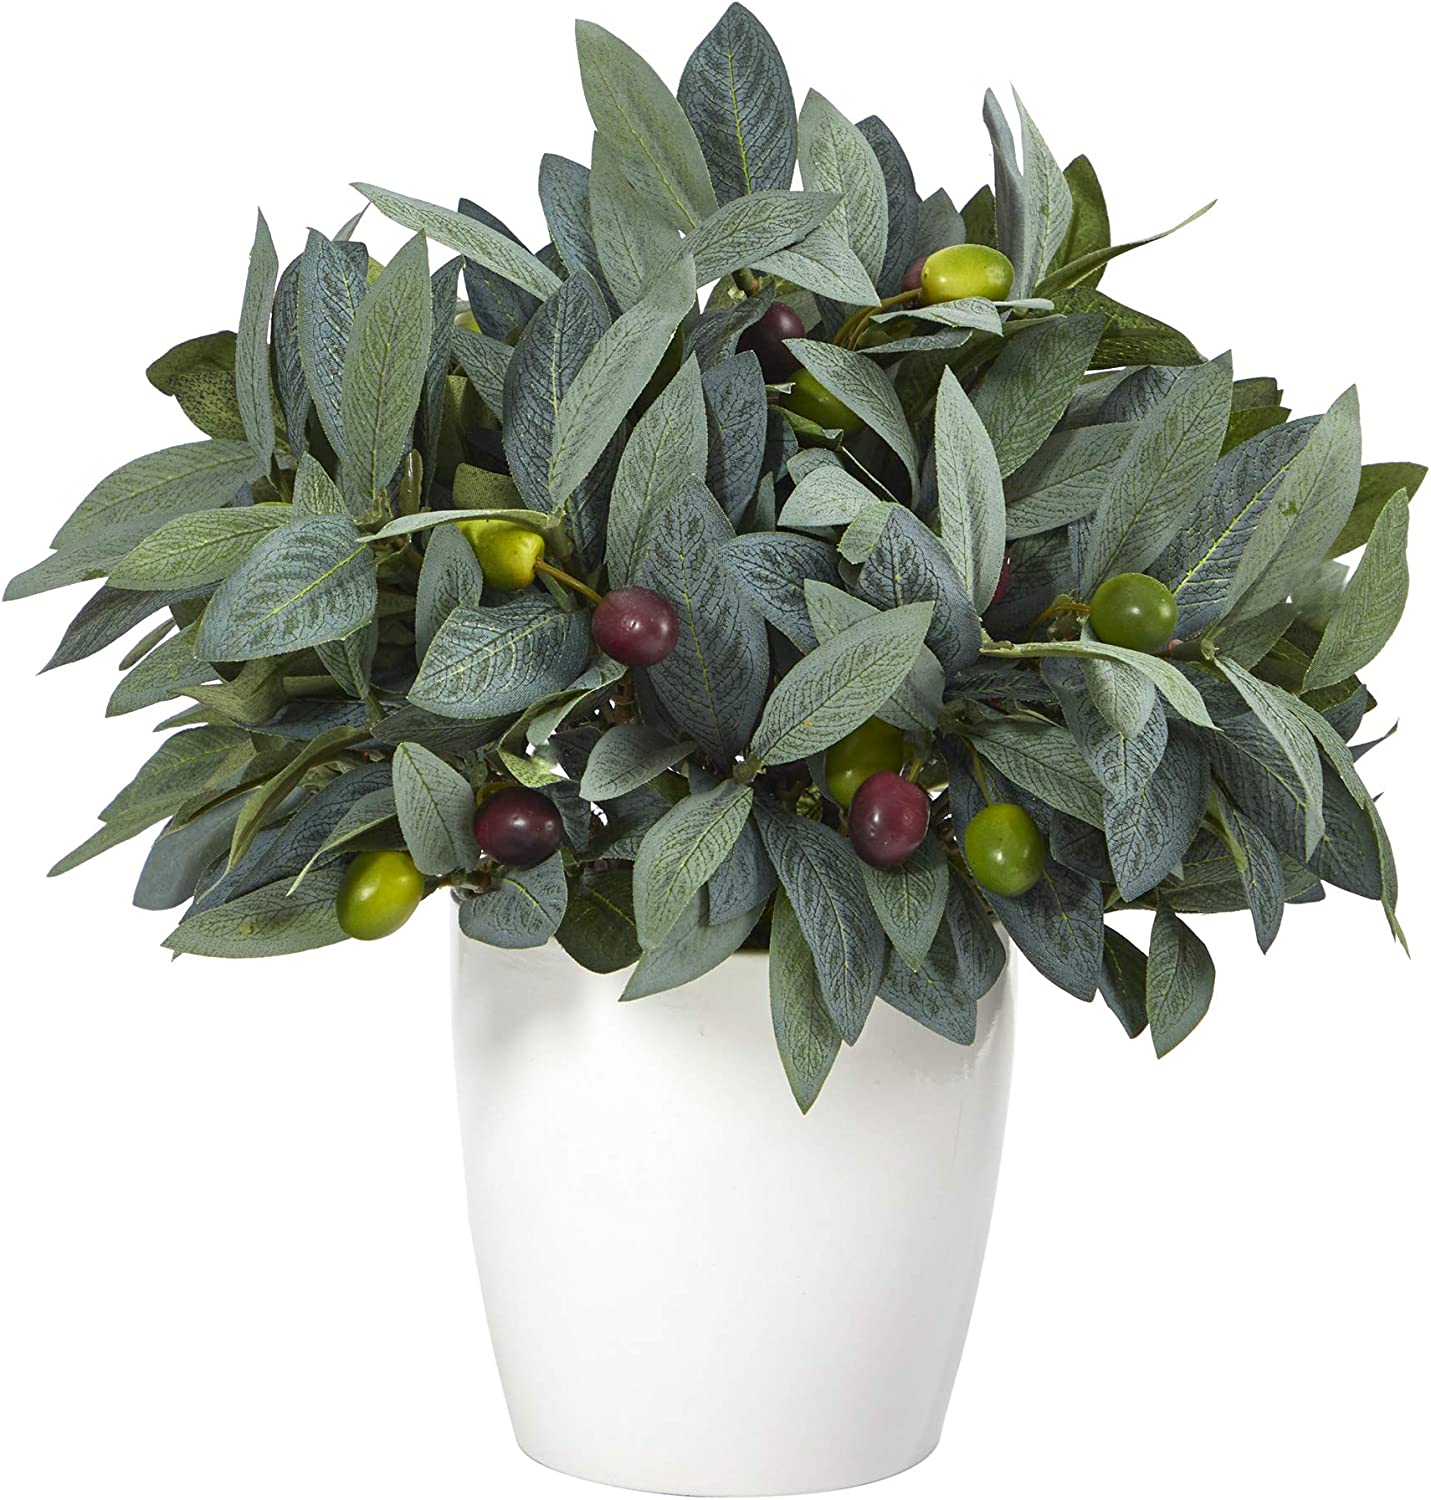 10in. Olive Artificial Plant with Berries Ranking TOP20 Planter Many popular brands in White